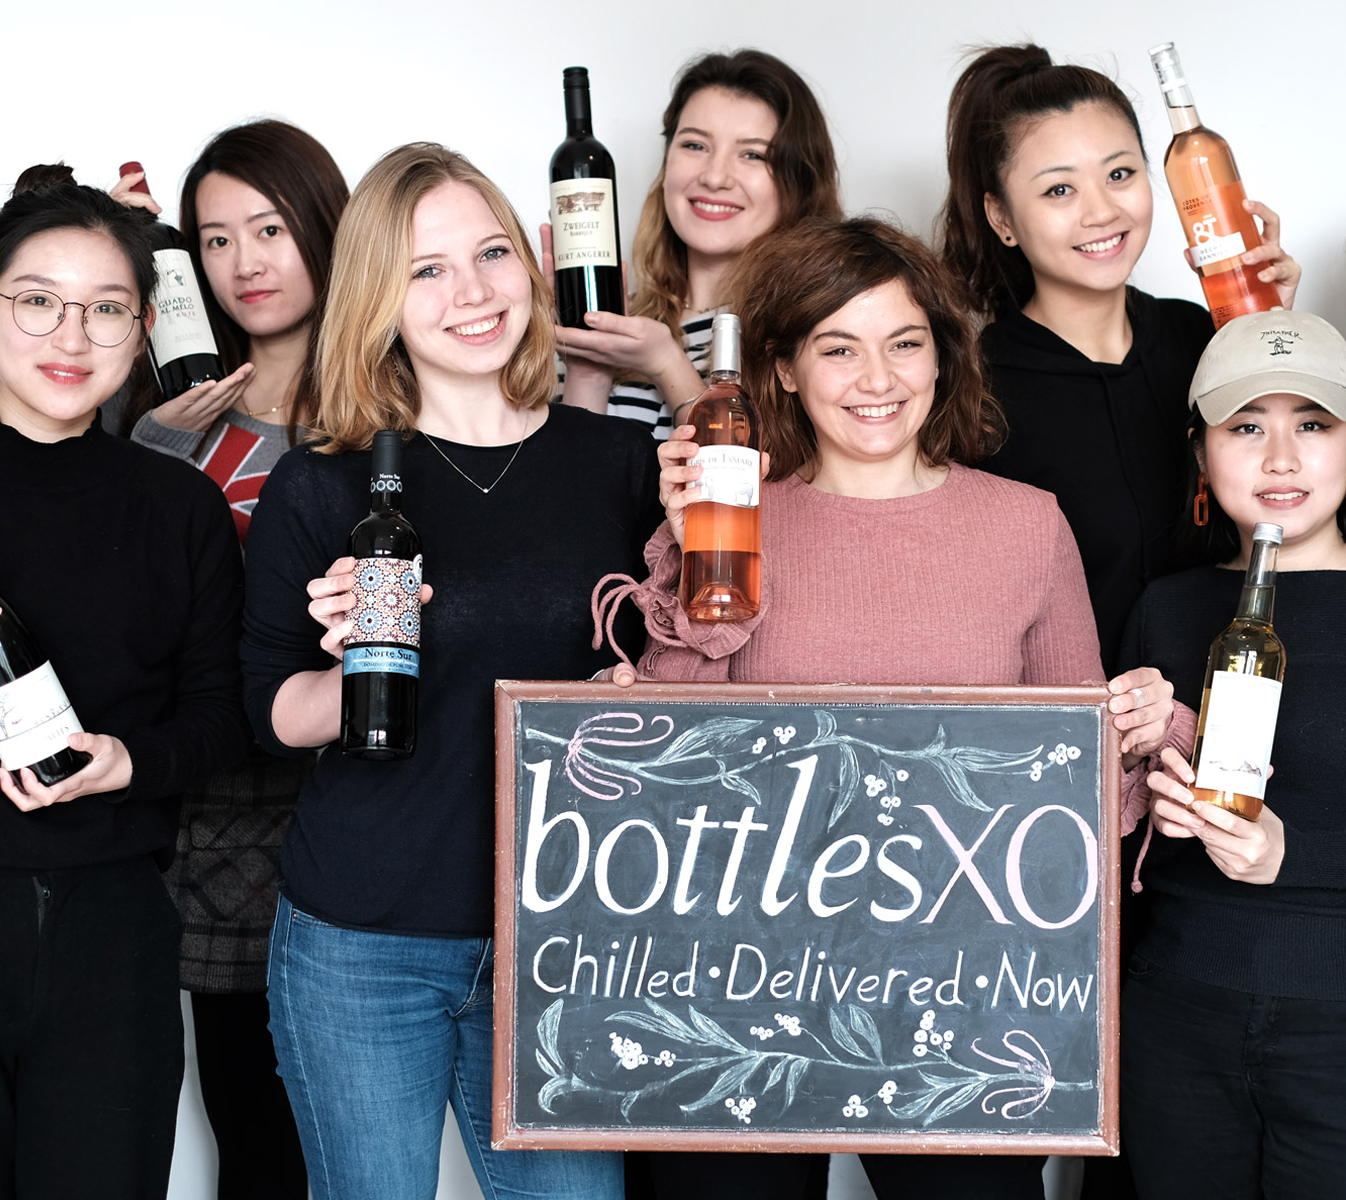 Save on Bottles Chosen by the Women of BottlesXO on Women's Day!